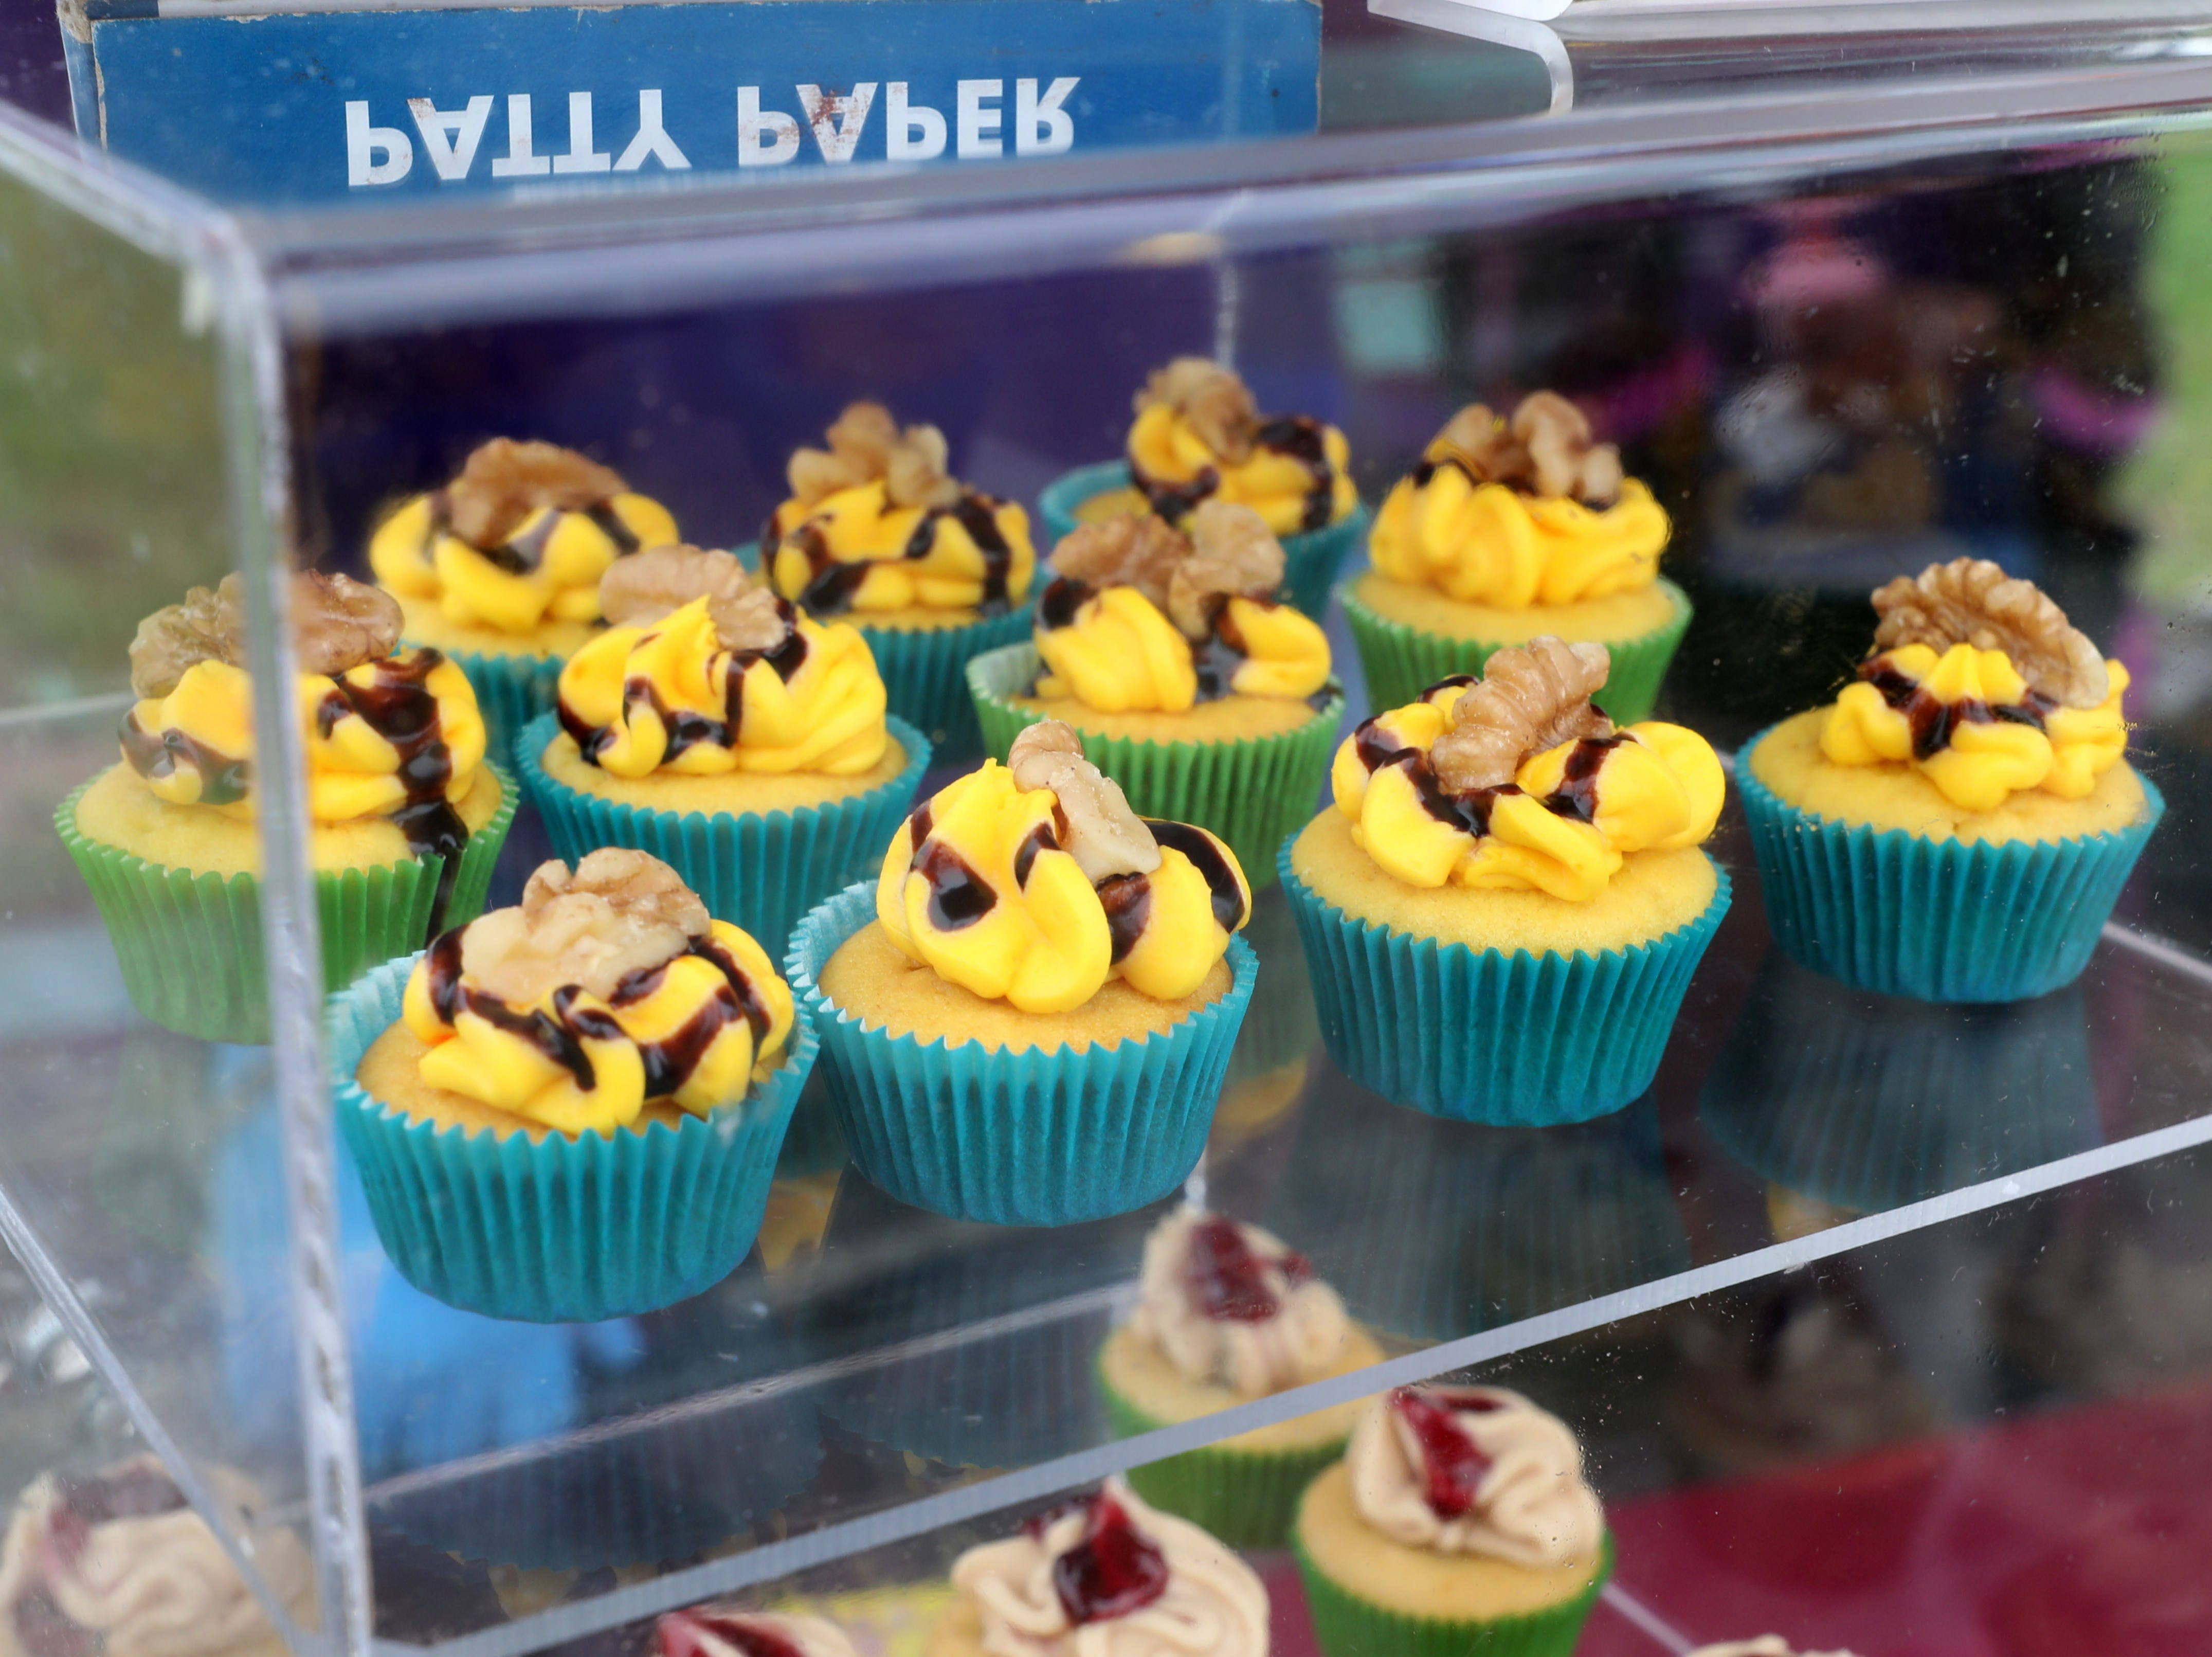 Ms. Vee's Sweet Treats cupcakes are pictured during the K104.7 Cupcake Festival at the Stormville Airport, May 4, 2019.